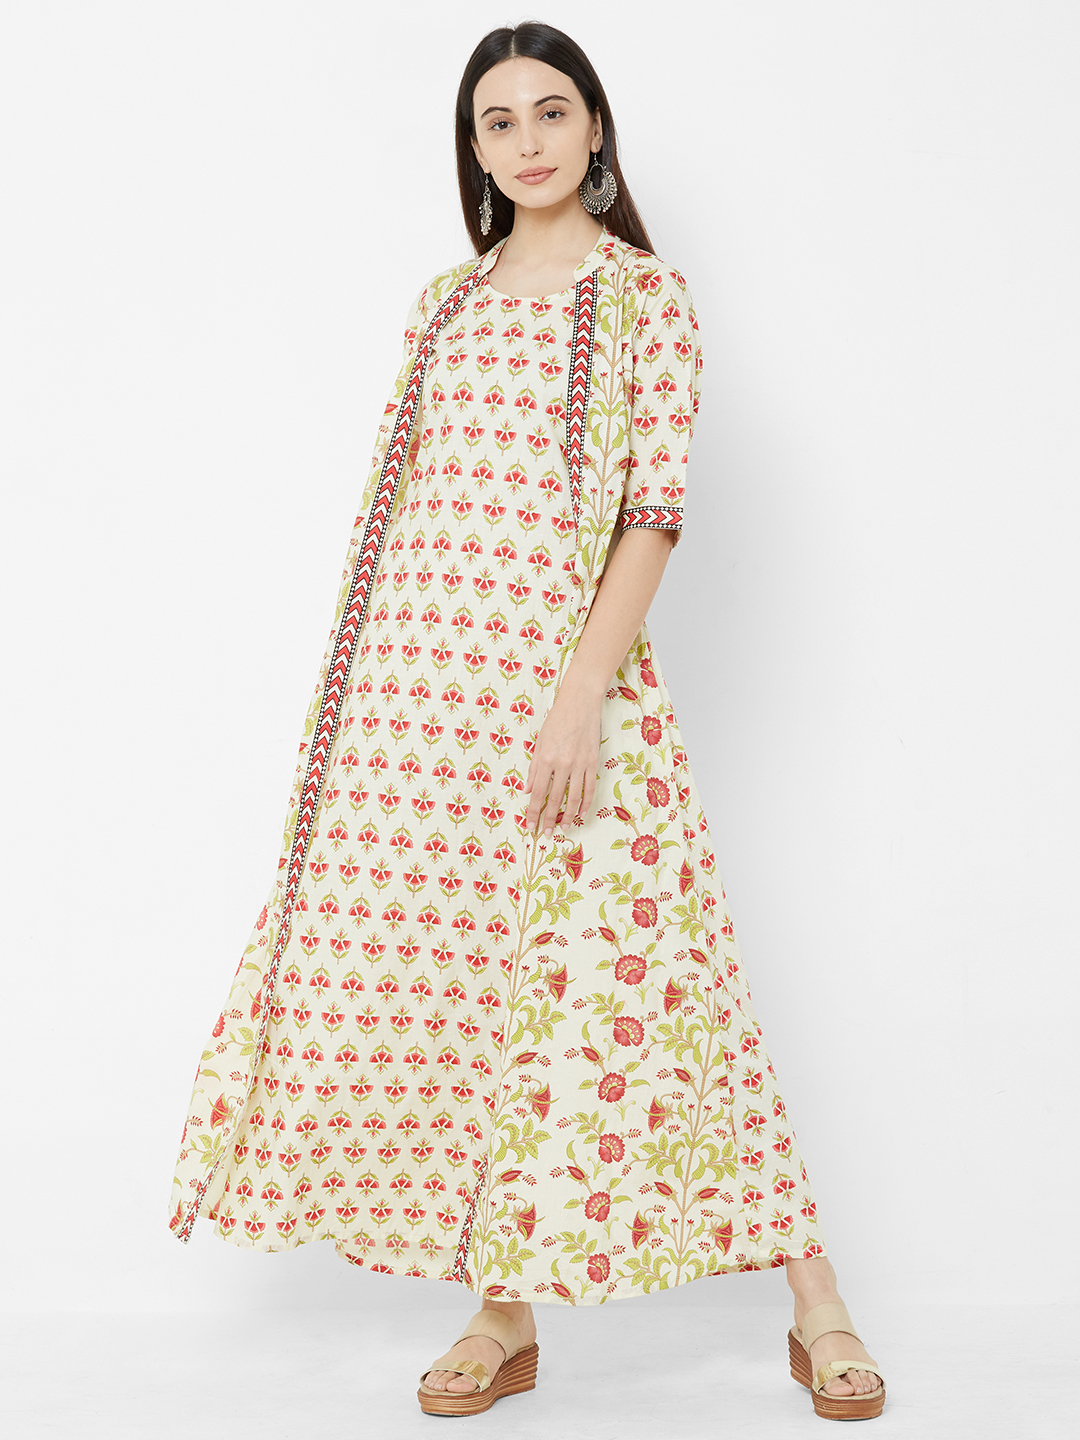 Women Off-White & Red Floral Printed A-Line Kurta Dress